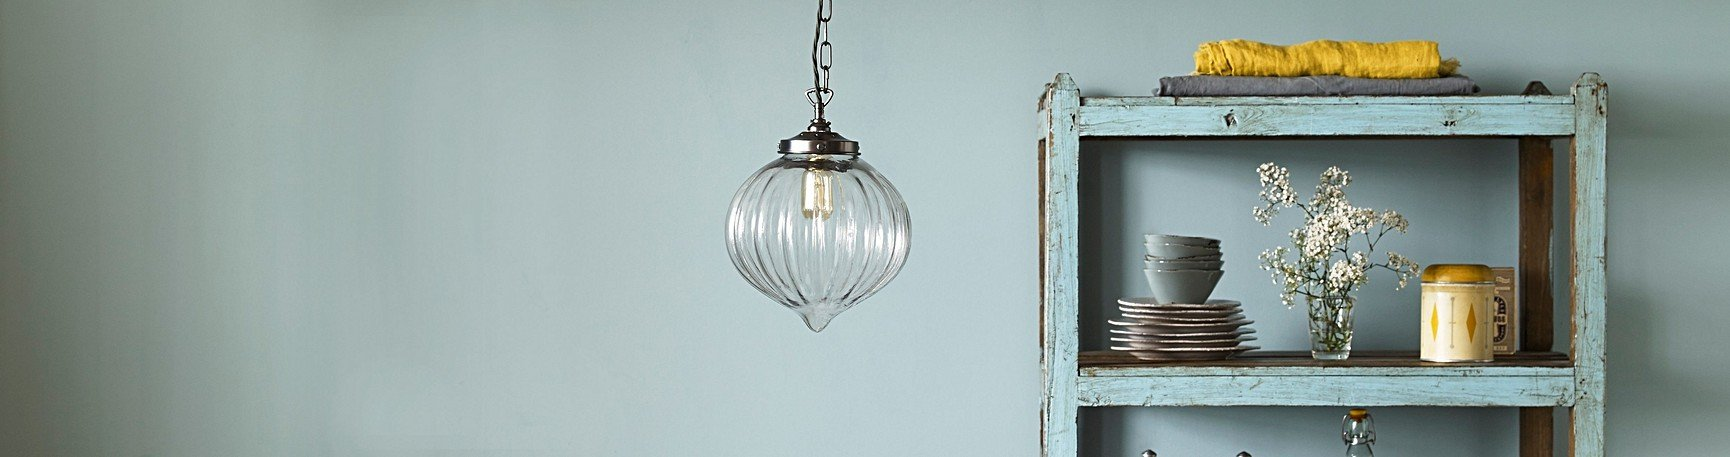 pendent light rustic chic pendant lamp loft personality style lights for products american edison bulb creative vintage rope eboutique living industrial